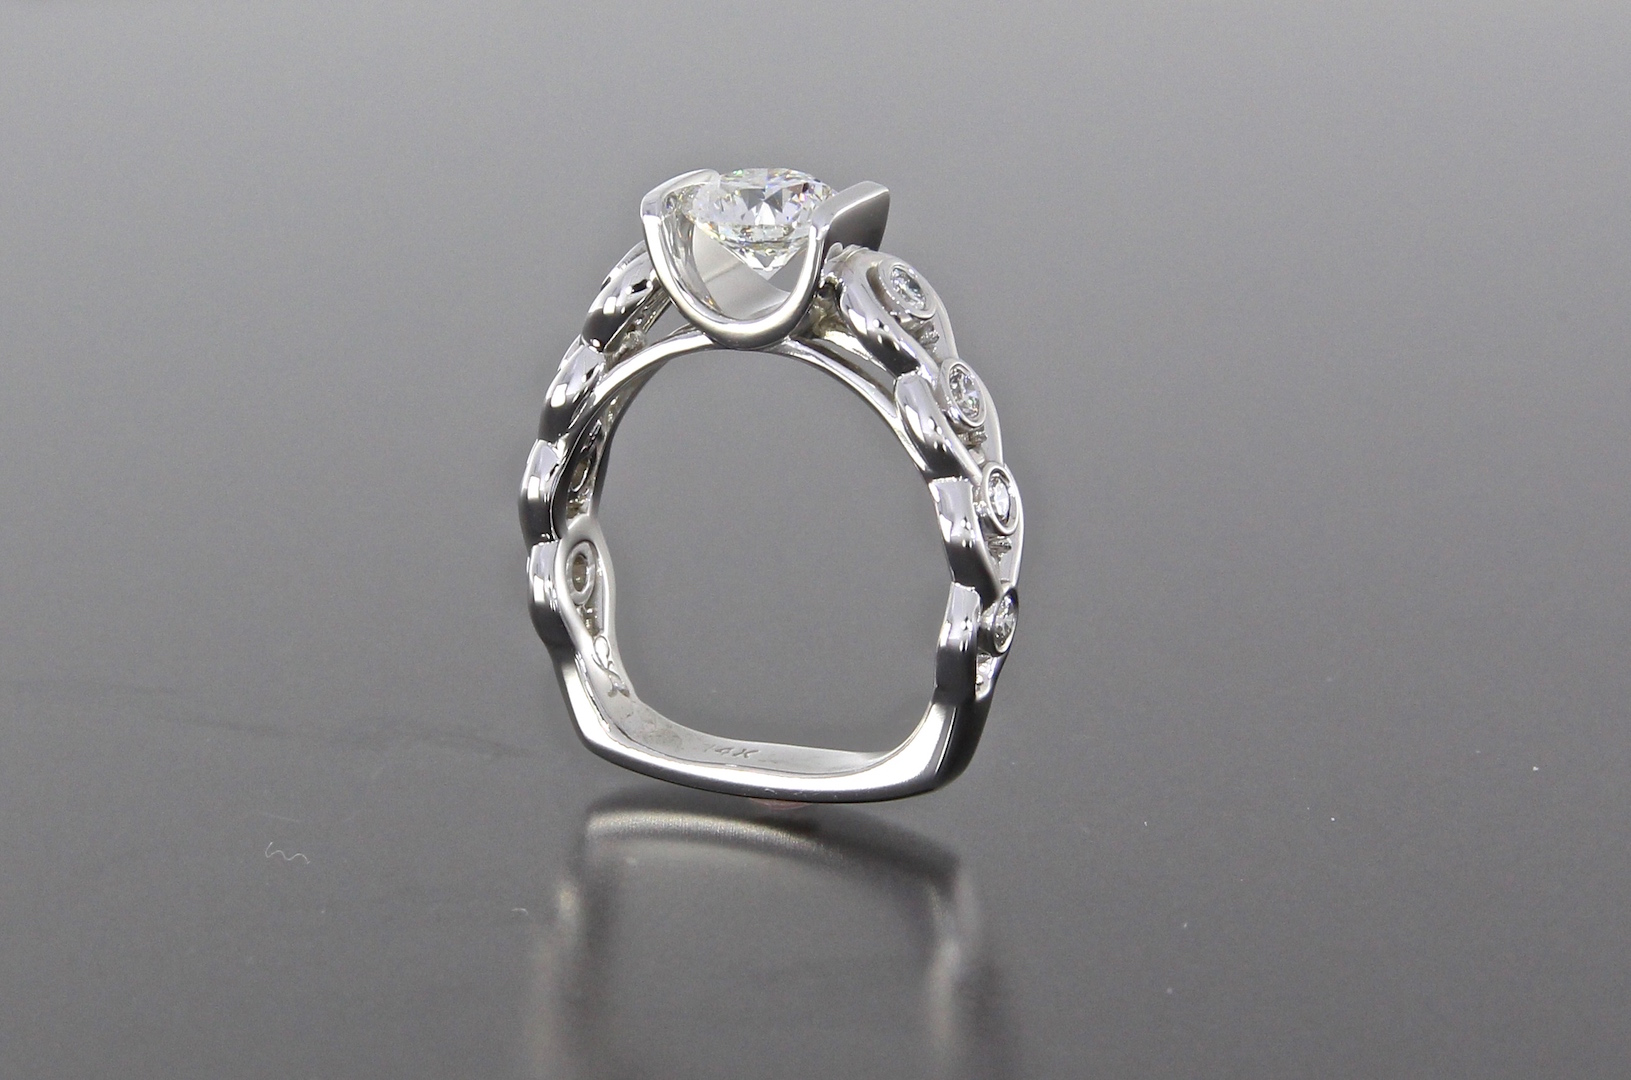 side-view-unique-custom-round-diamond-modern-engagement-ring-craft-revival-jewelry-store-grand-rapids